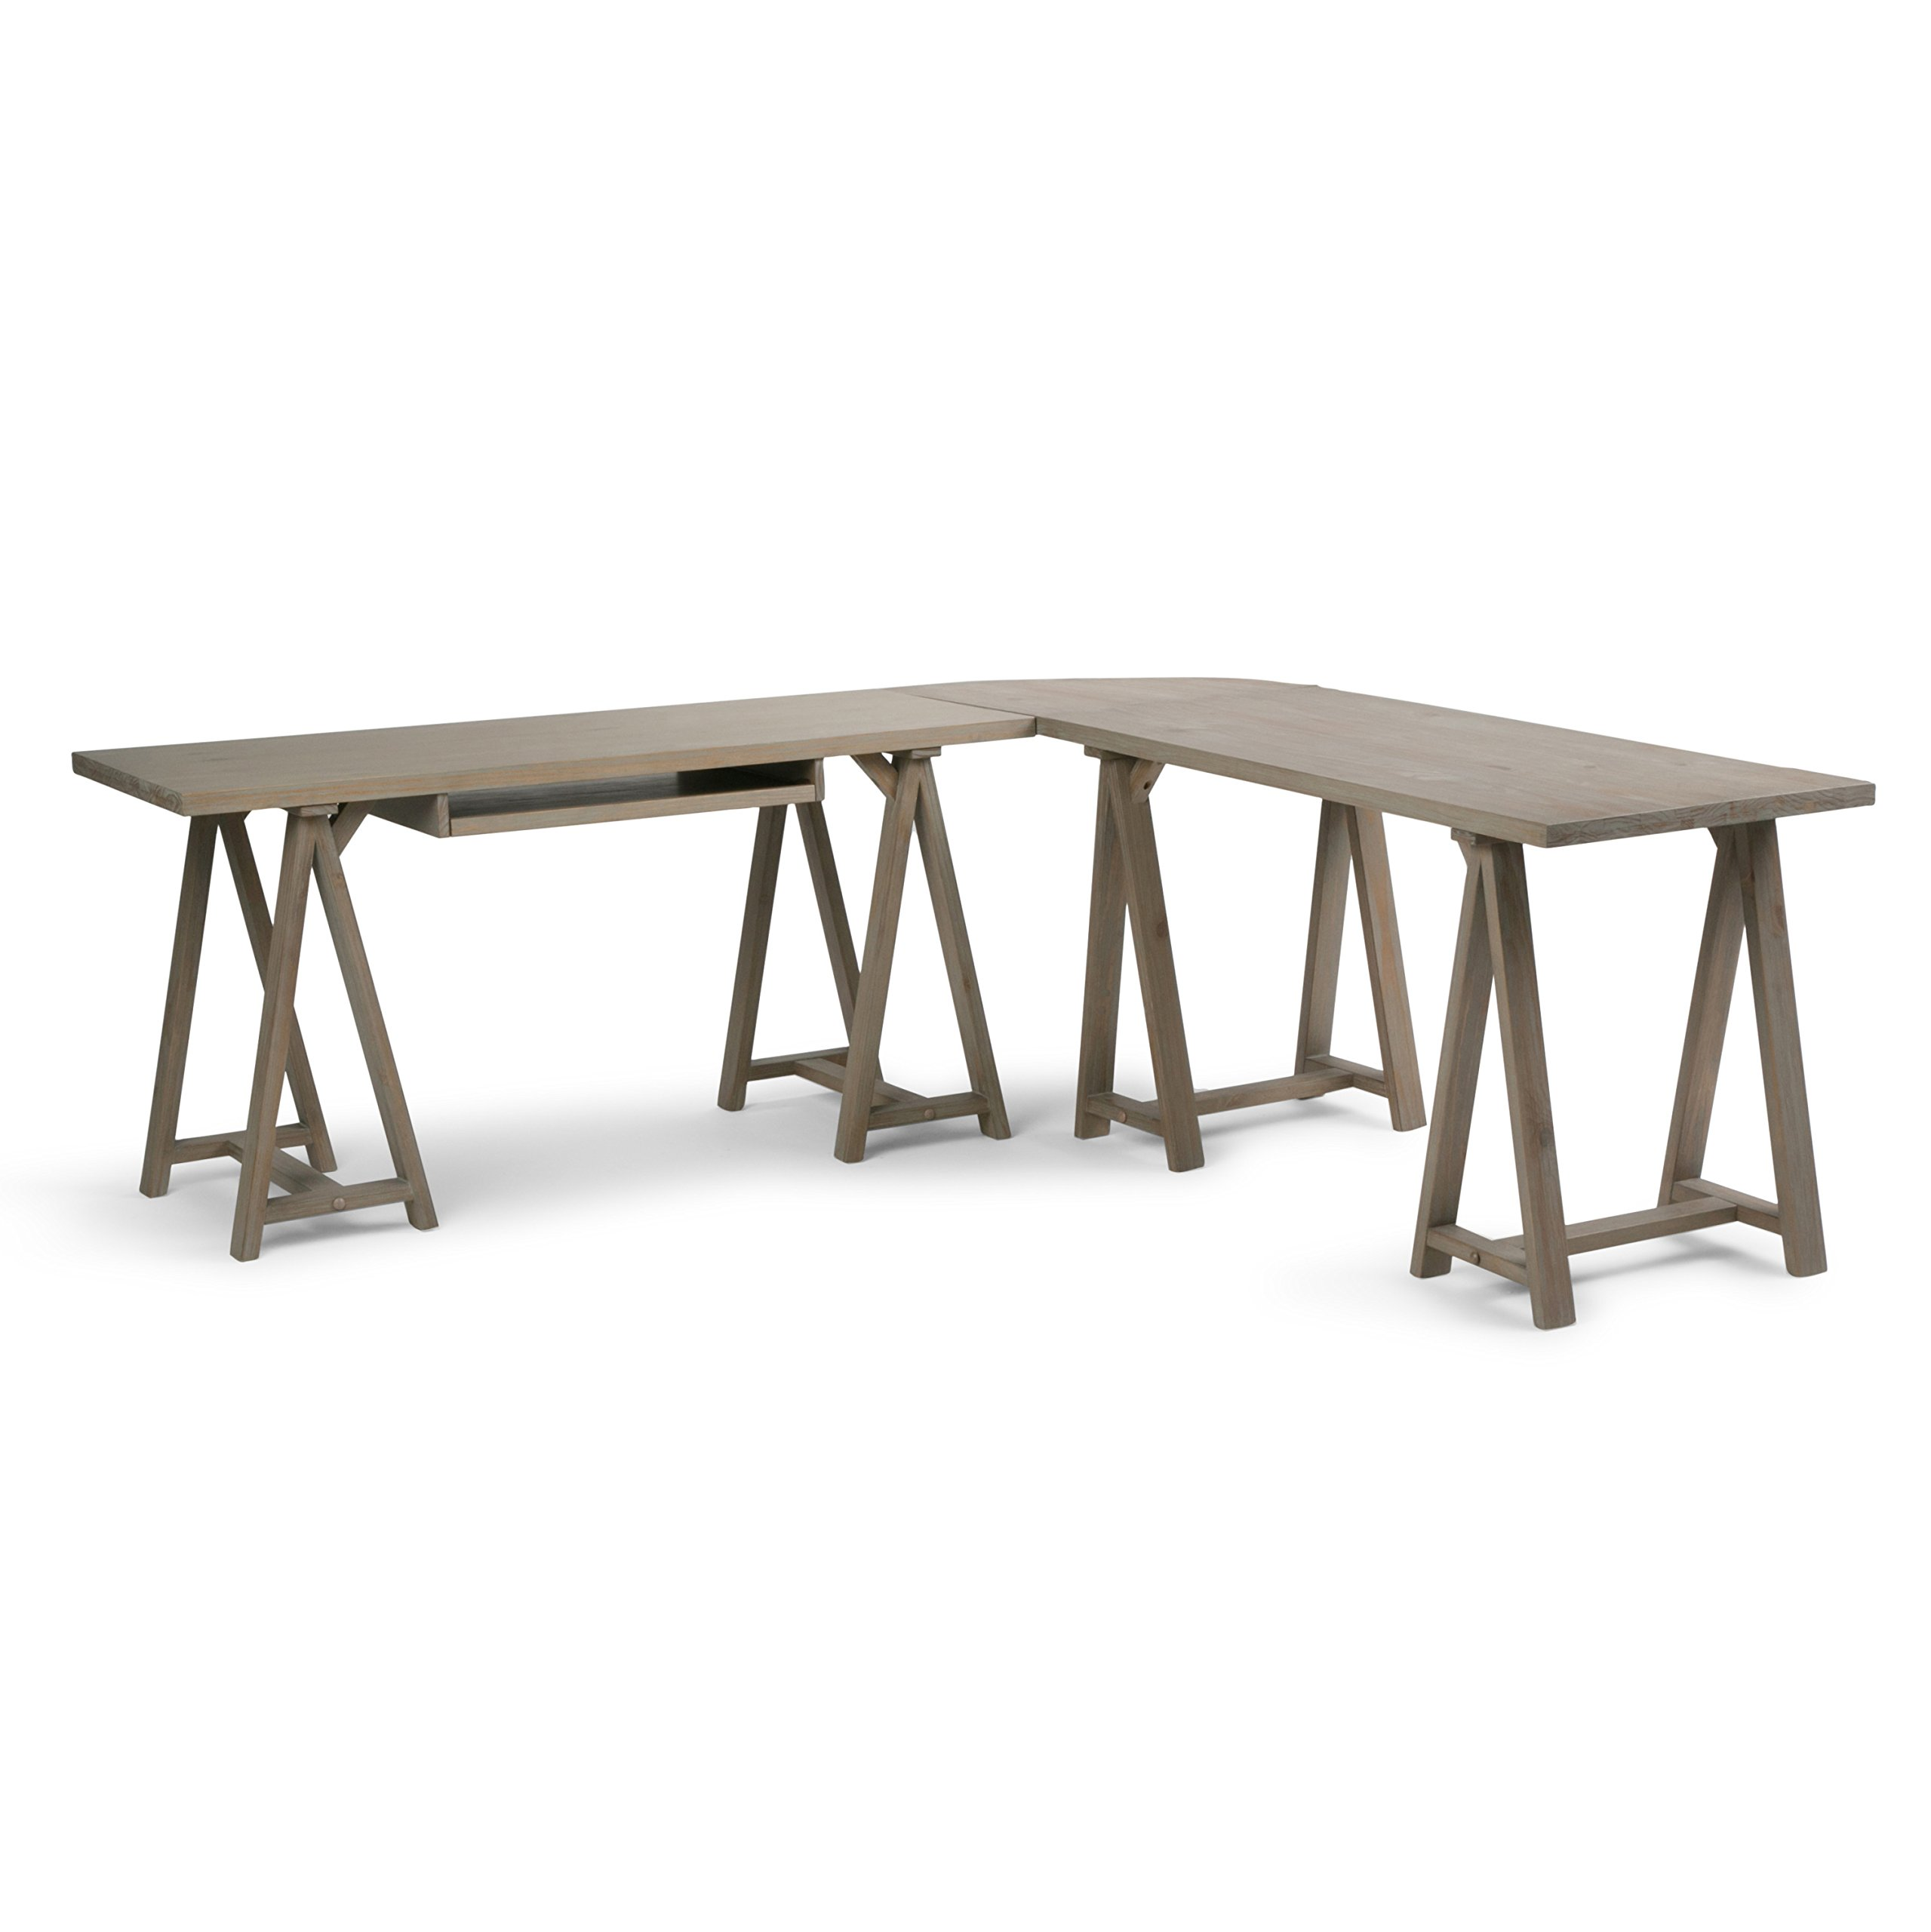 Simpli Home Sawhorse Solid Wood L-Shape Corner Desk, Distressed Grey by Simpli Home (Image #1)